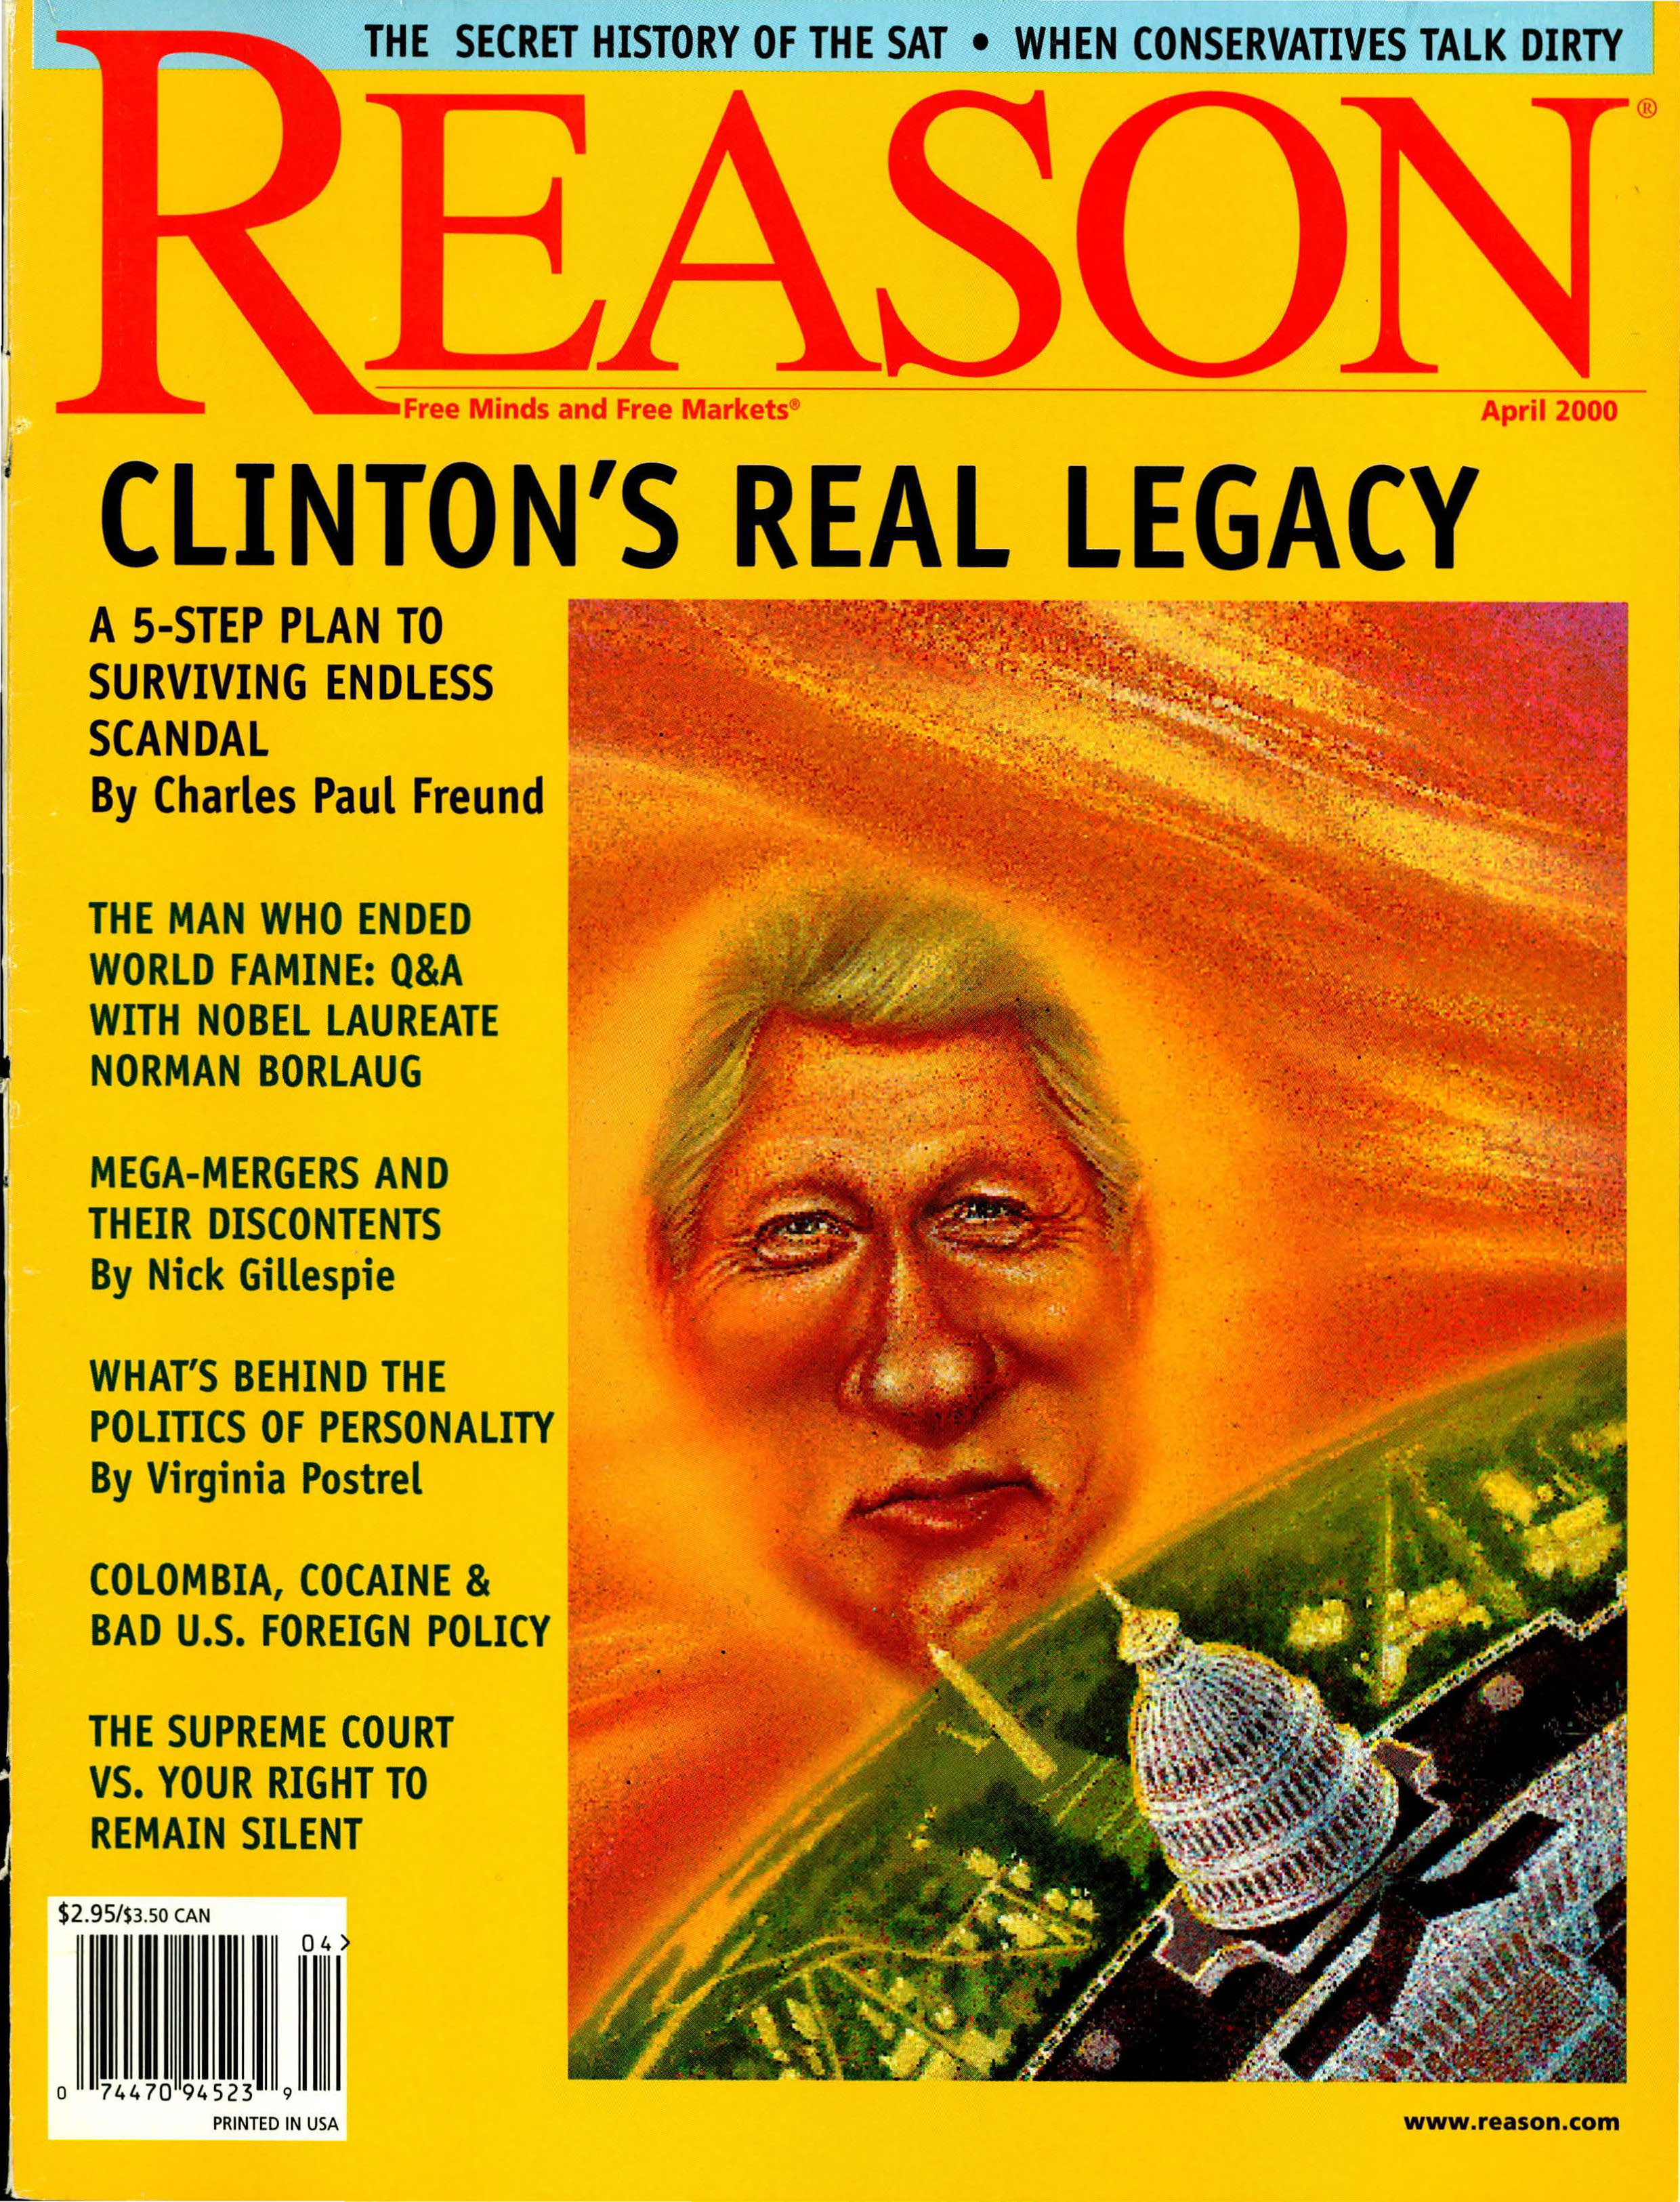 Reason Magazine, April 2000 cover image